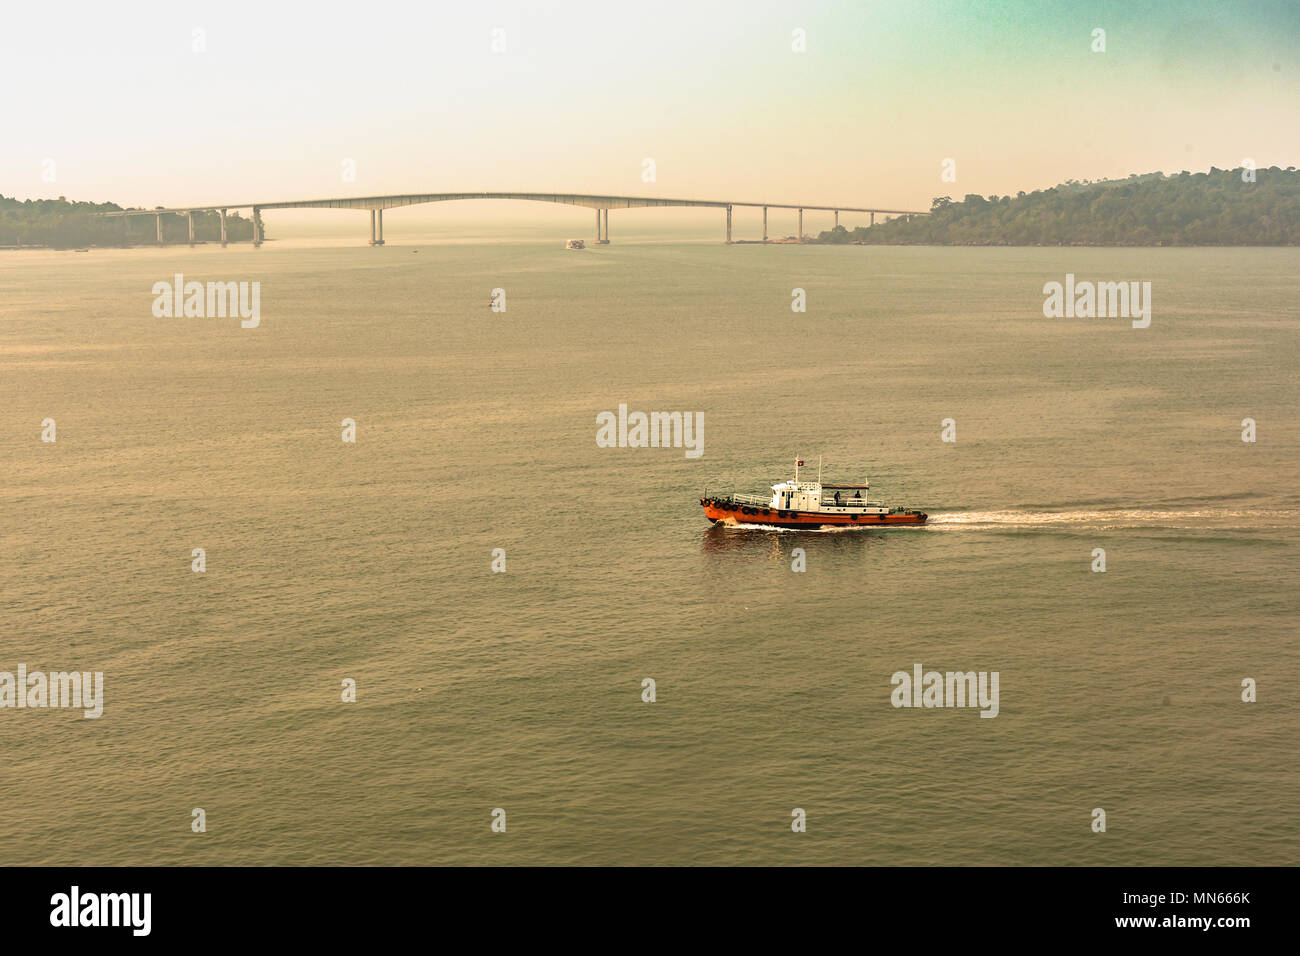 the techo markot bridge that links the mainland with Koh Puos island near sihanoukville harbour. Cambodia - Stock Image